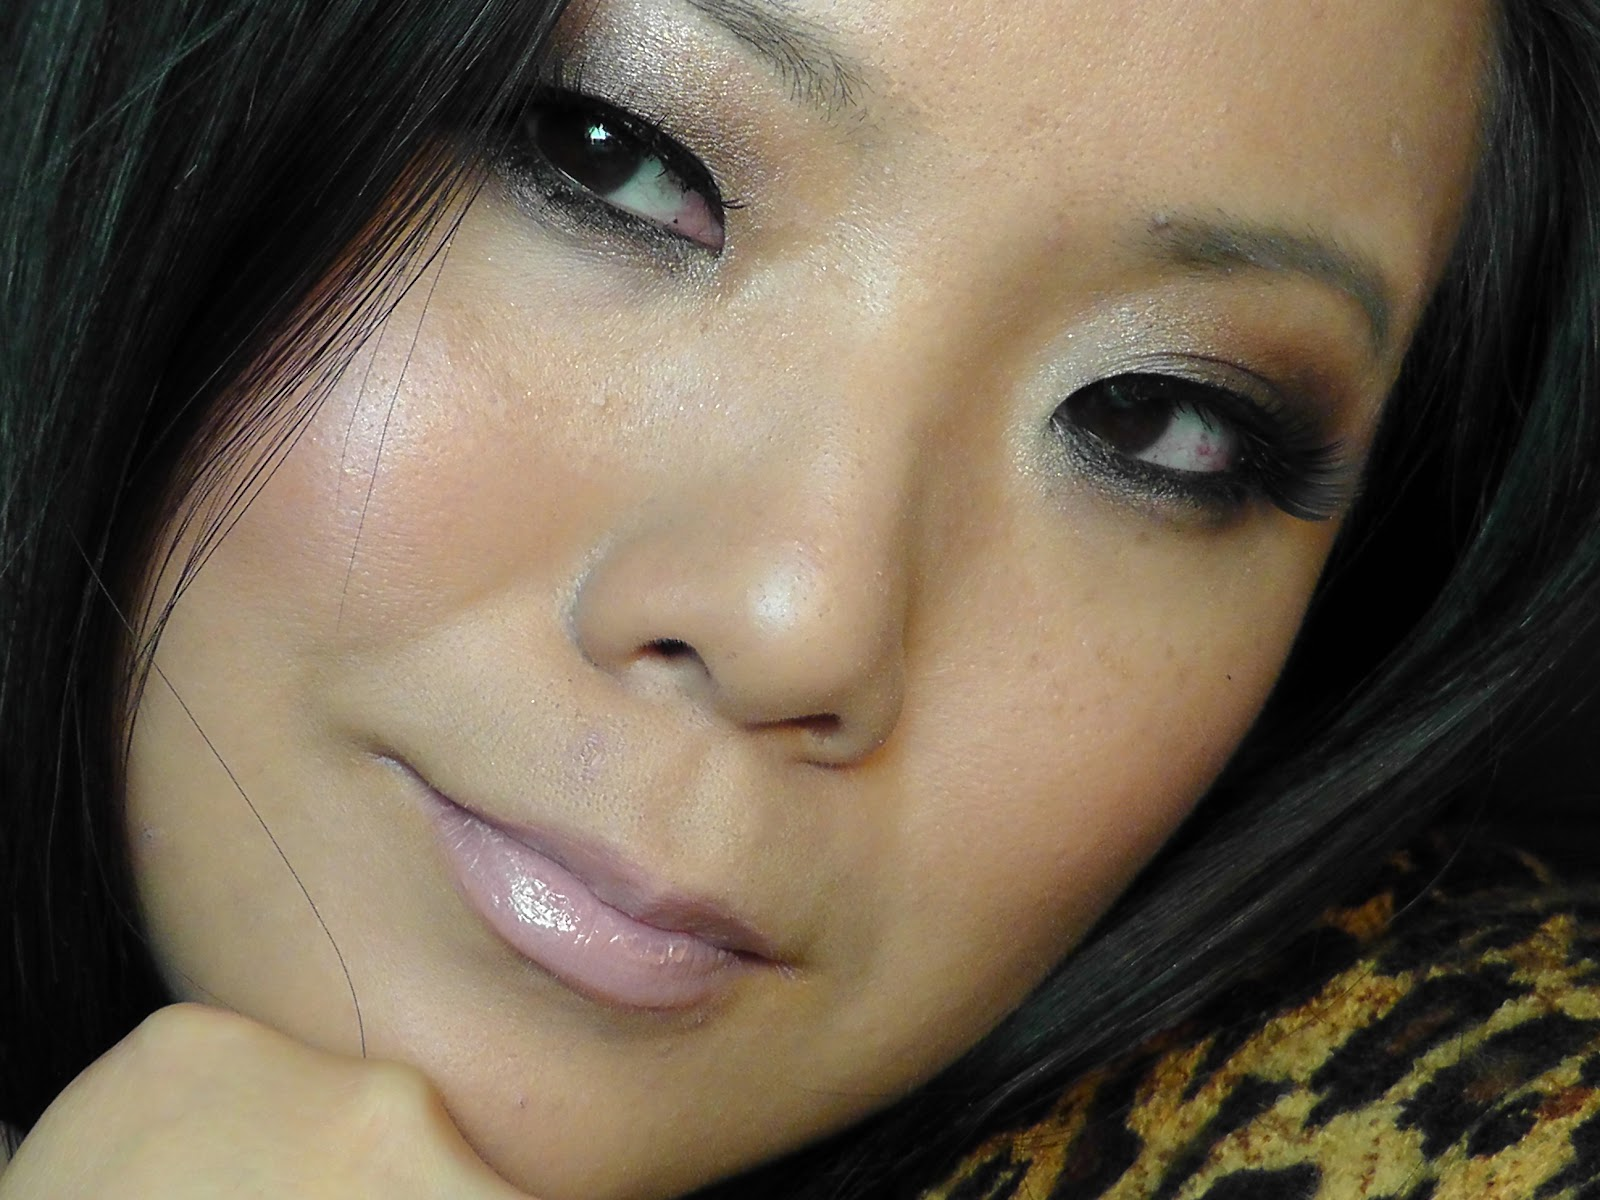 urban decay naked eyes palette 2 tutorial